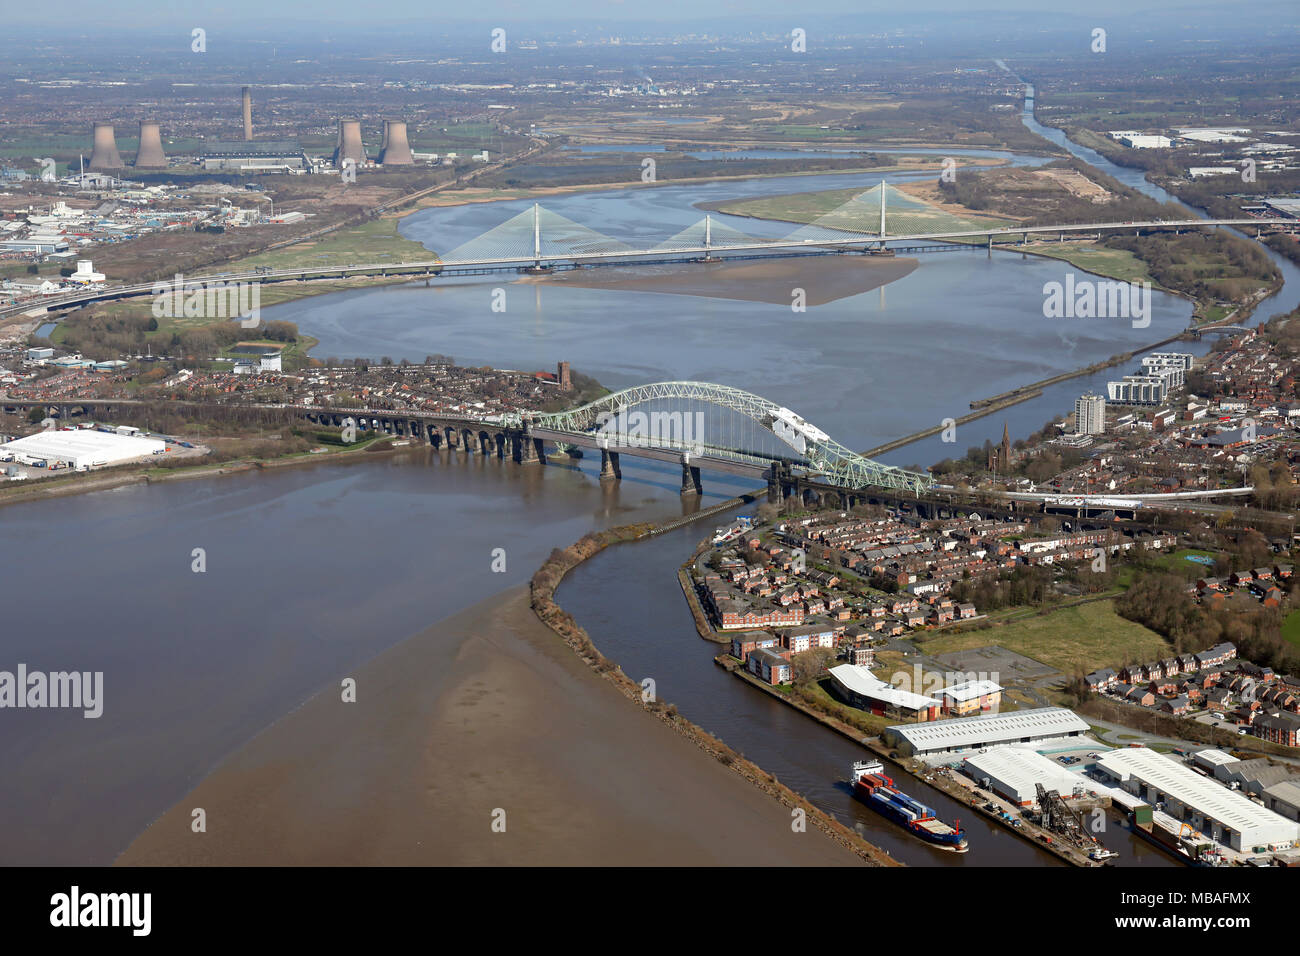 aerial view of the two Mersey crossings bridges at Runcorn, Cheshire - Stock Image